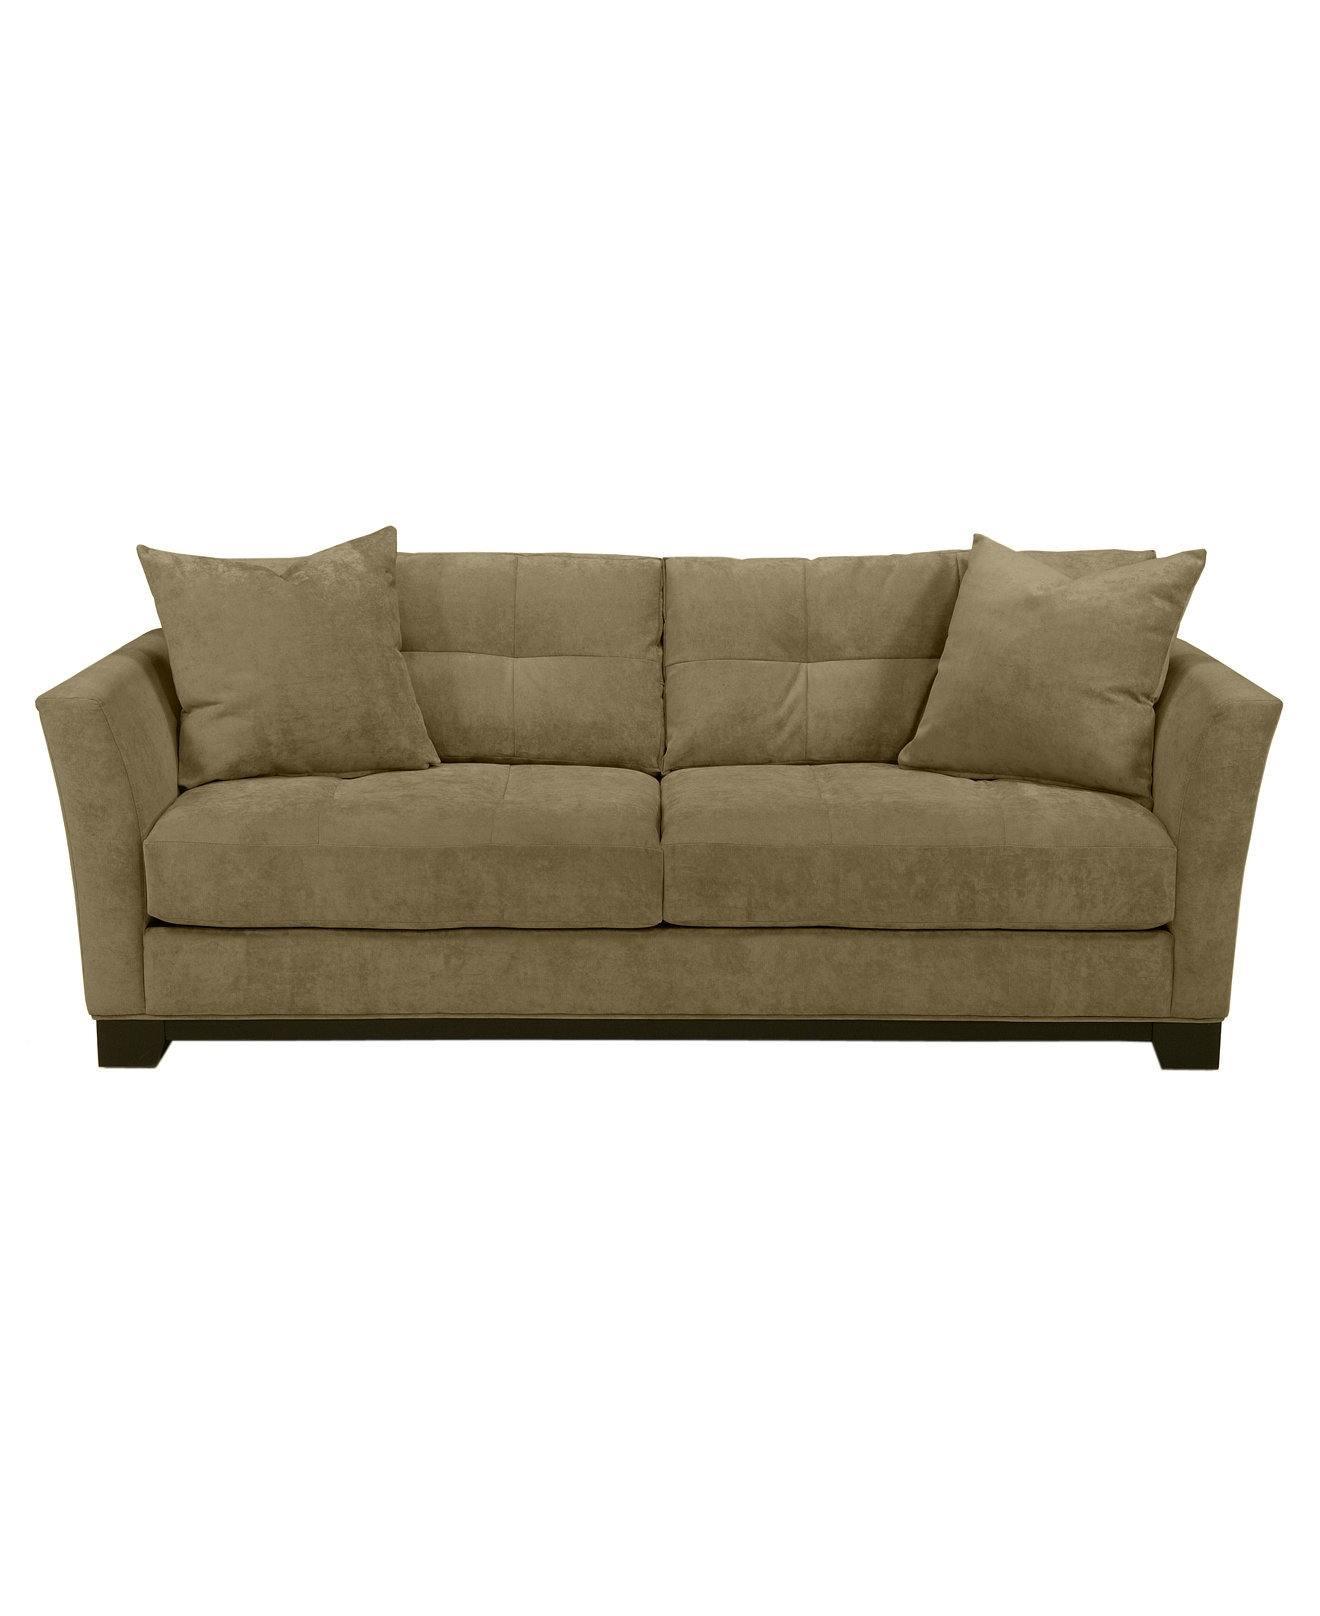 90 Wide Elliot Fabric Microfiber Queen Sleeper Sofa Bed - Couches in Everett Wa Sectional Sofas